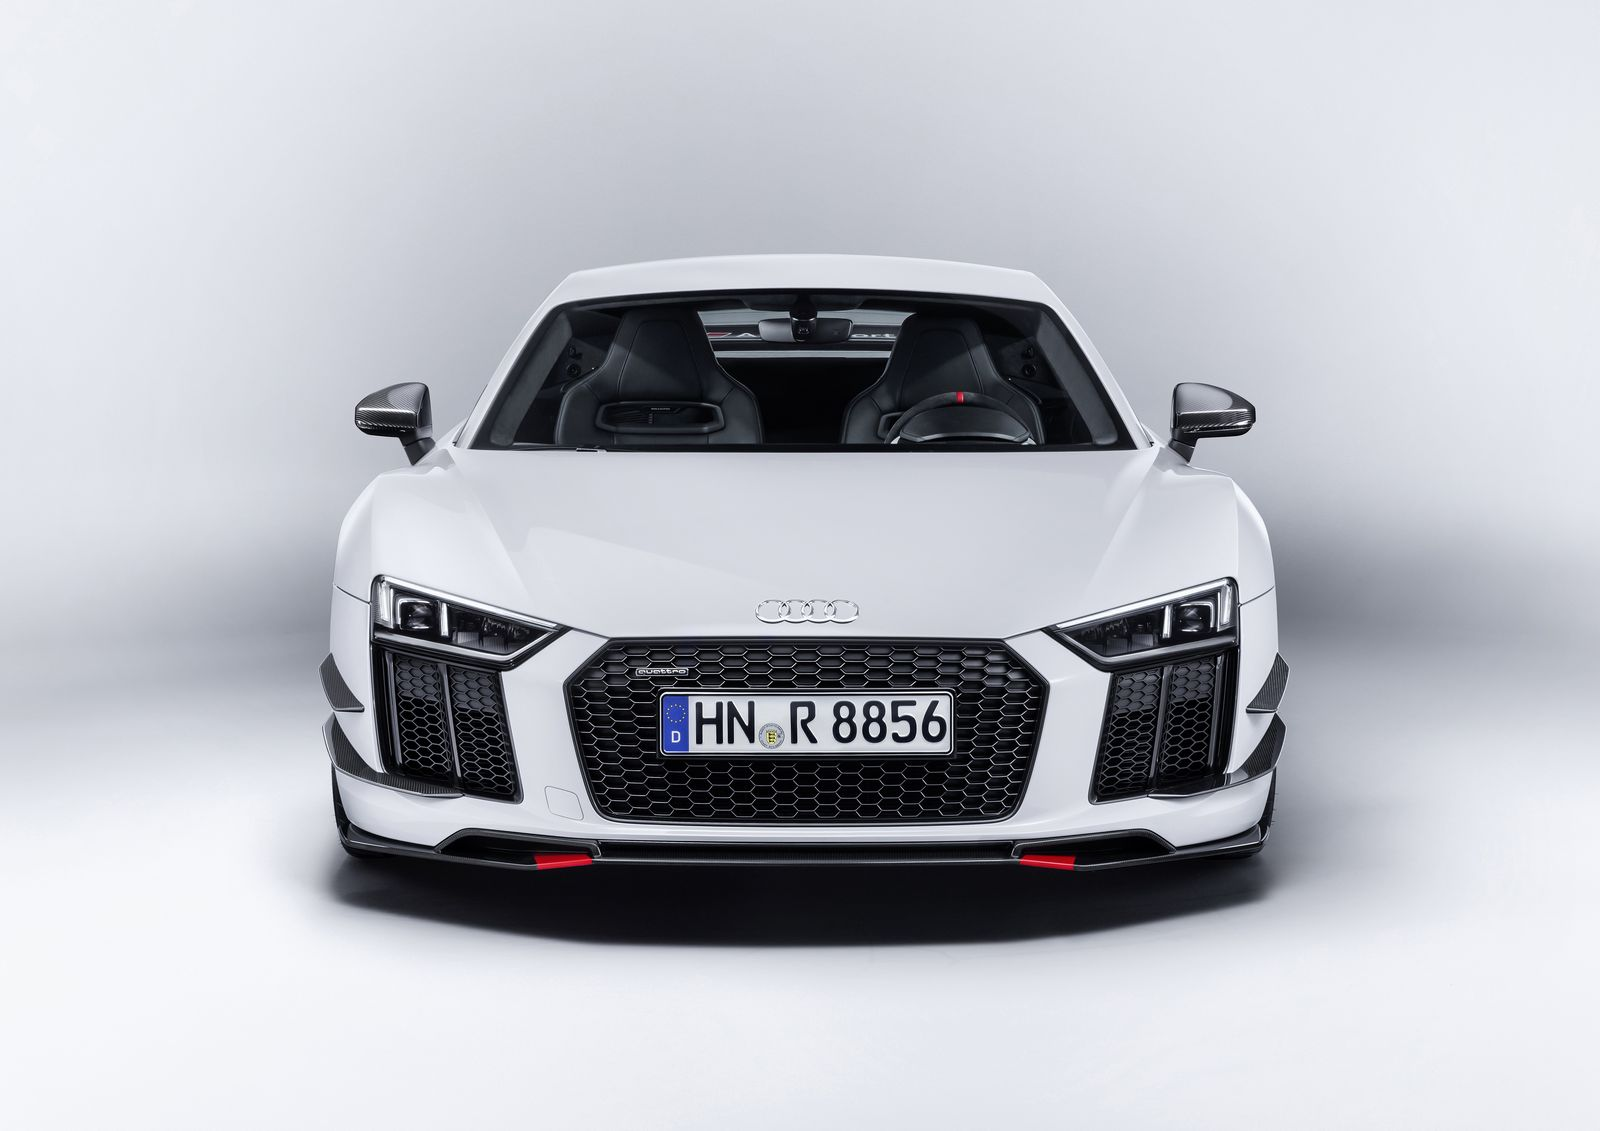 audi sport performance parts look the biz on r8 and tt. Black Bedroom Furniture Sets. Home Design Ideas